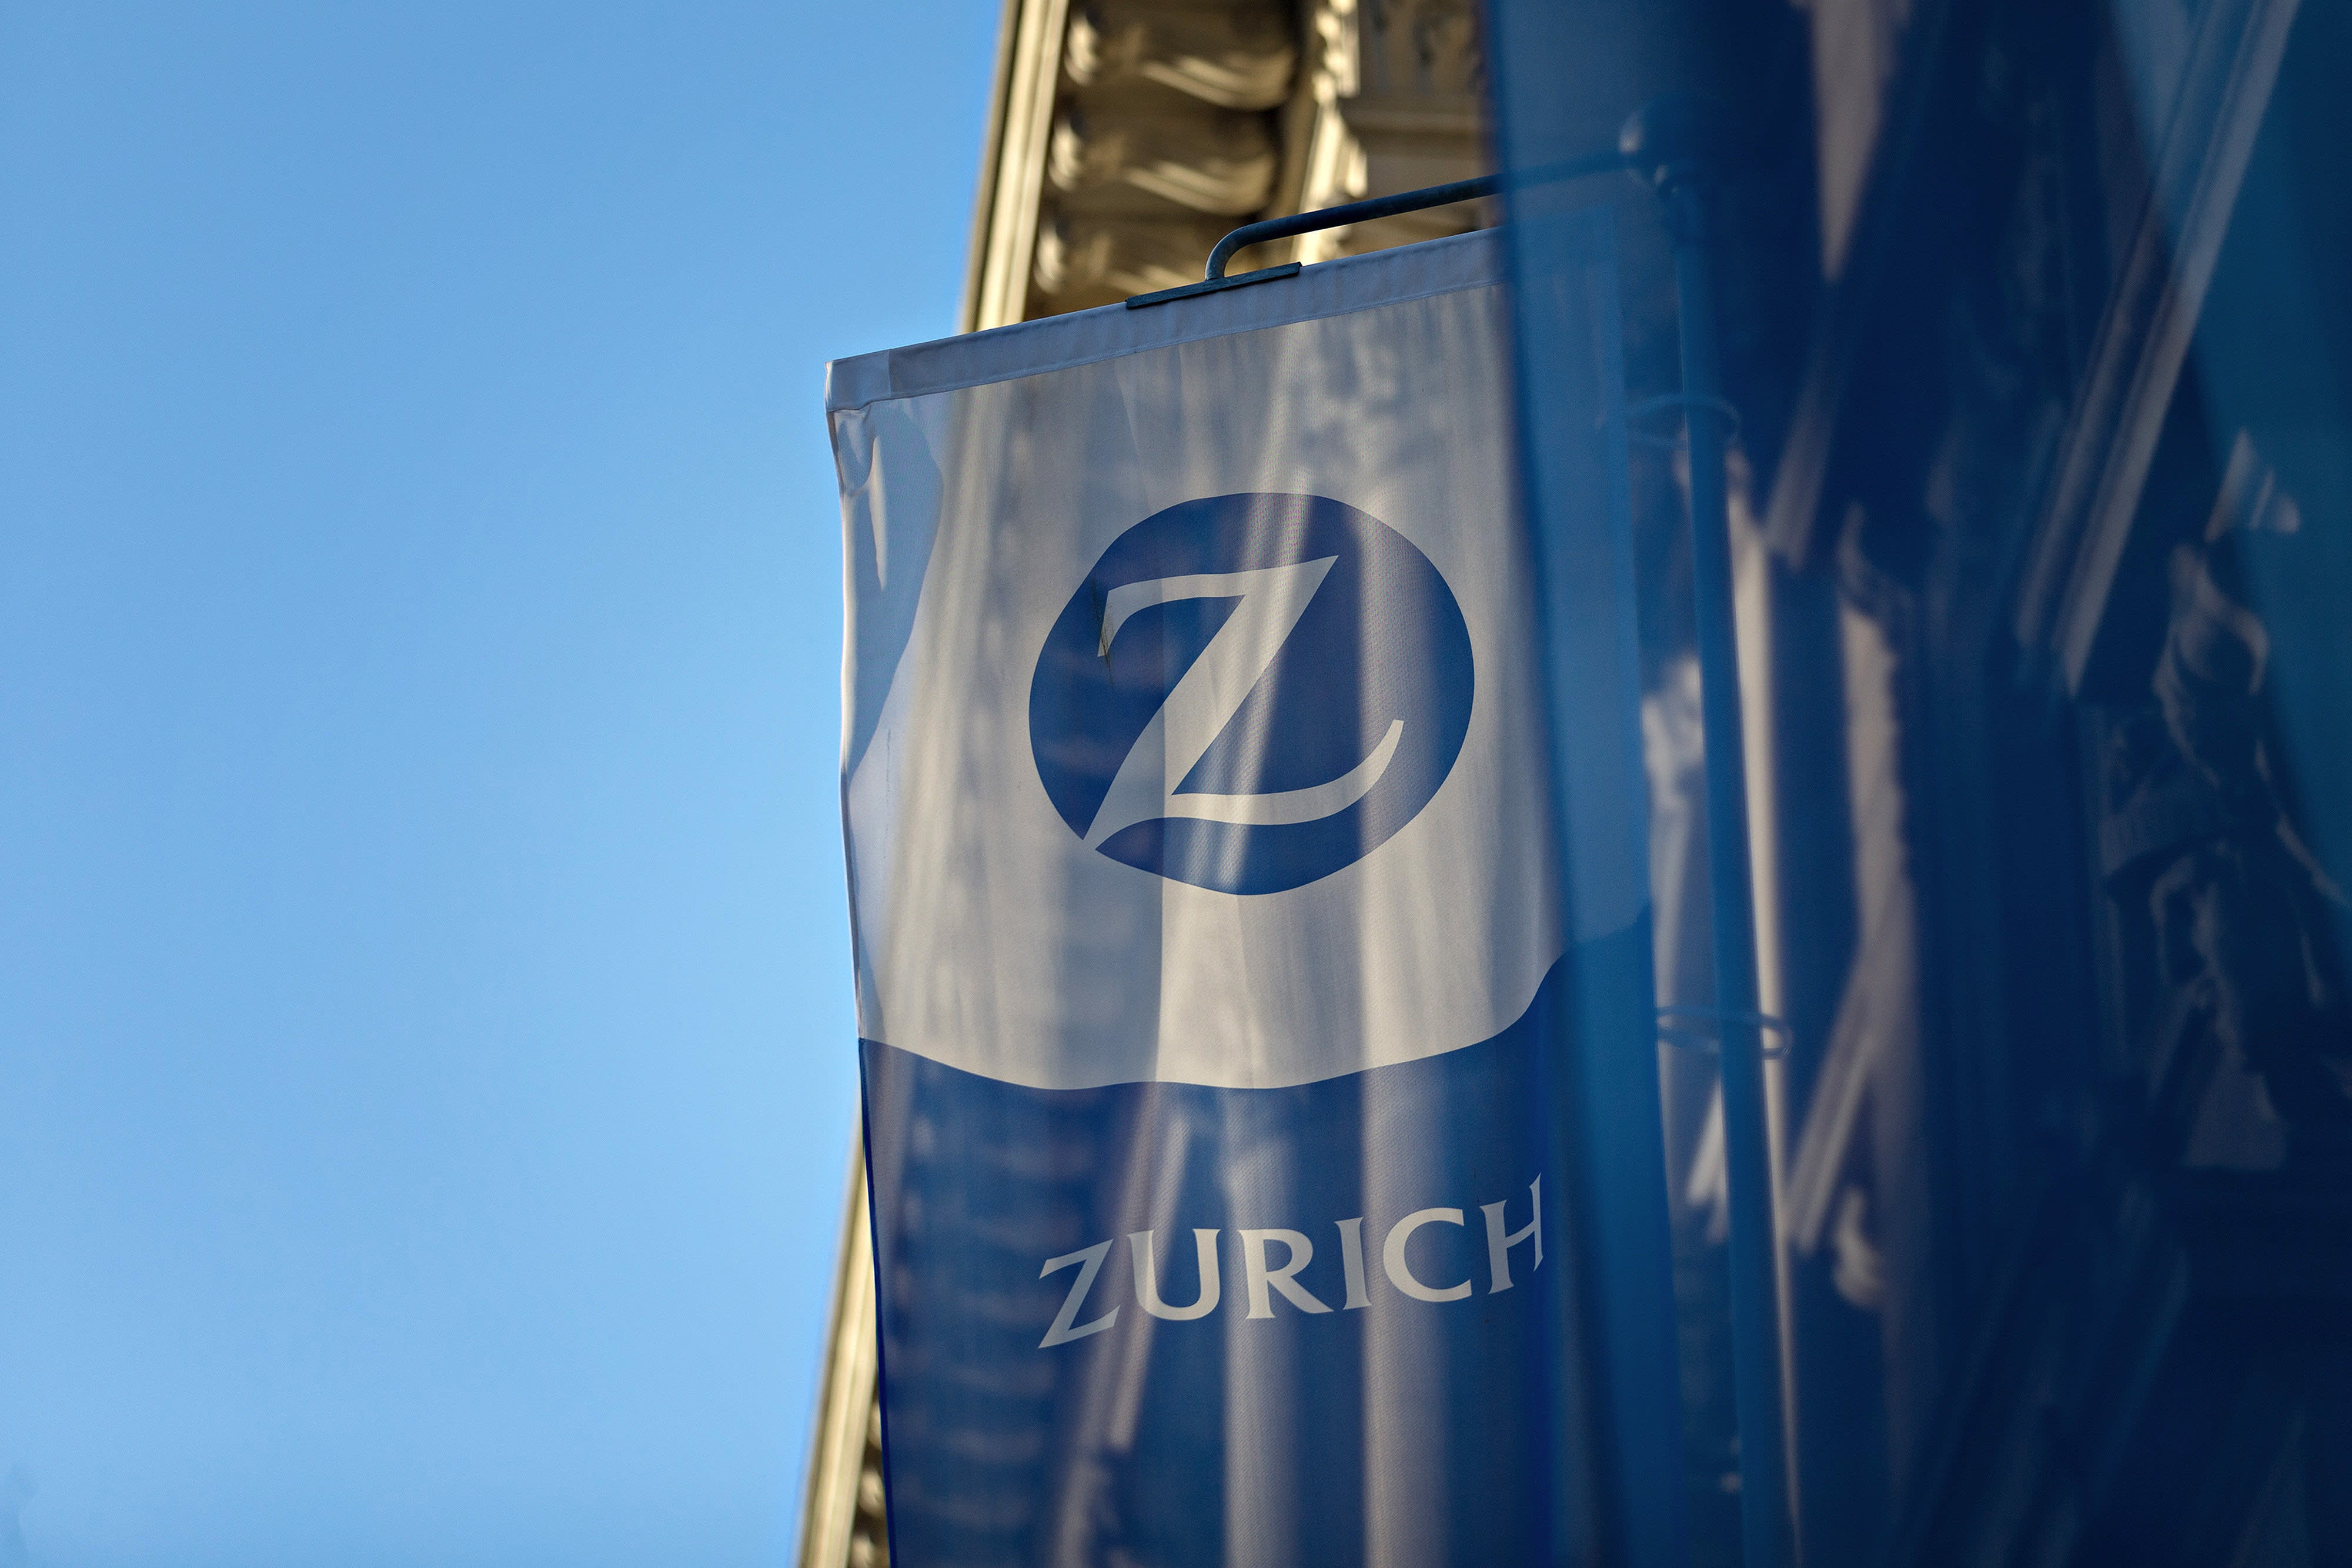 Zurich pays out on 96% of claims